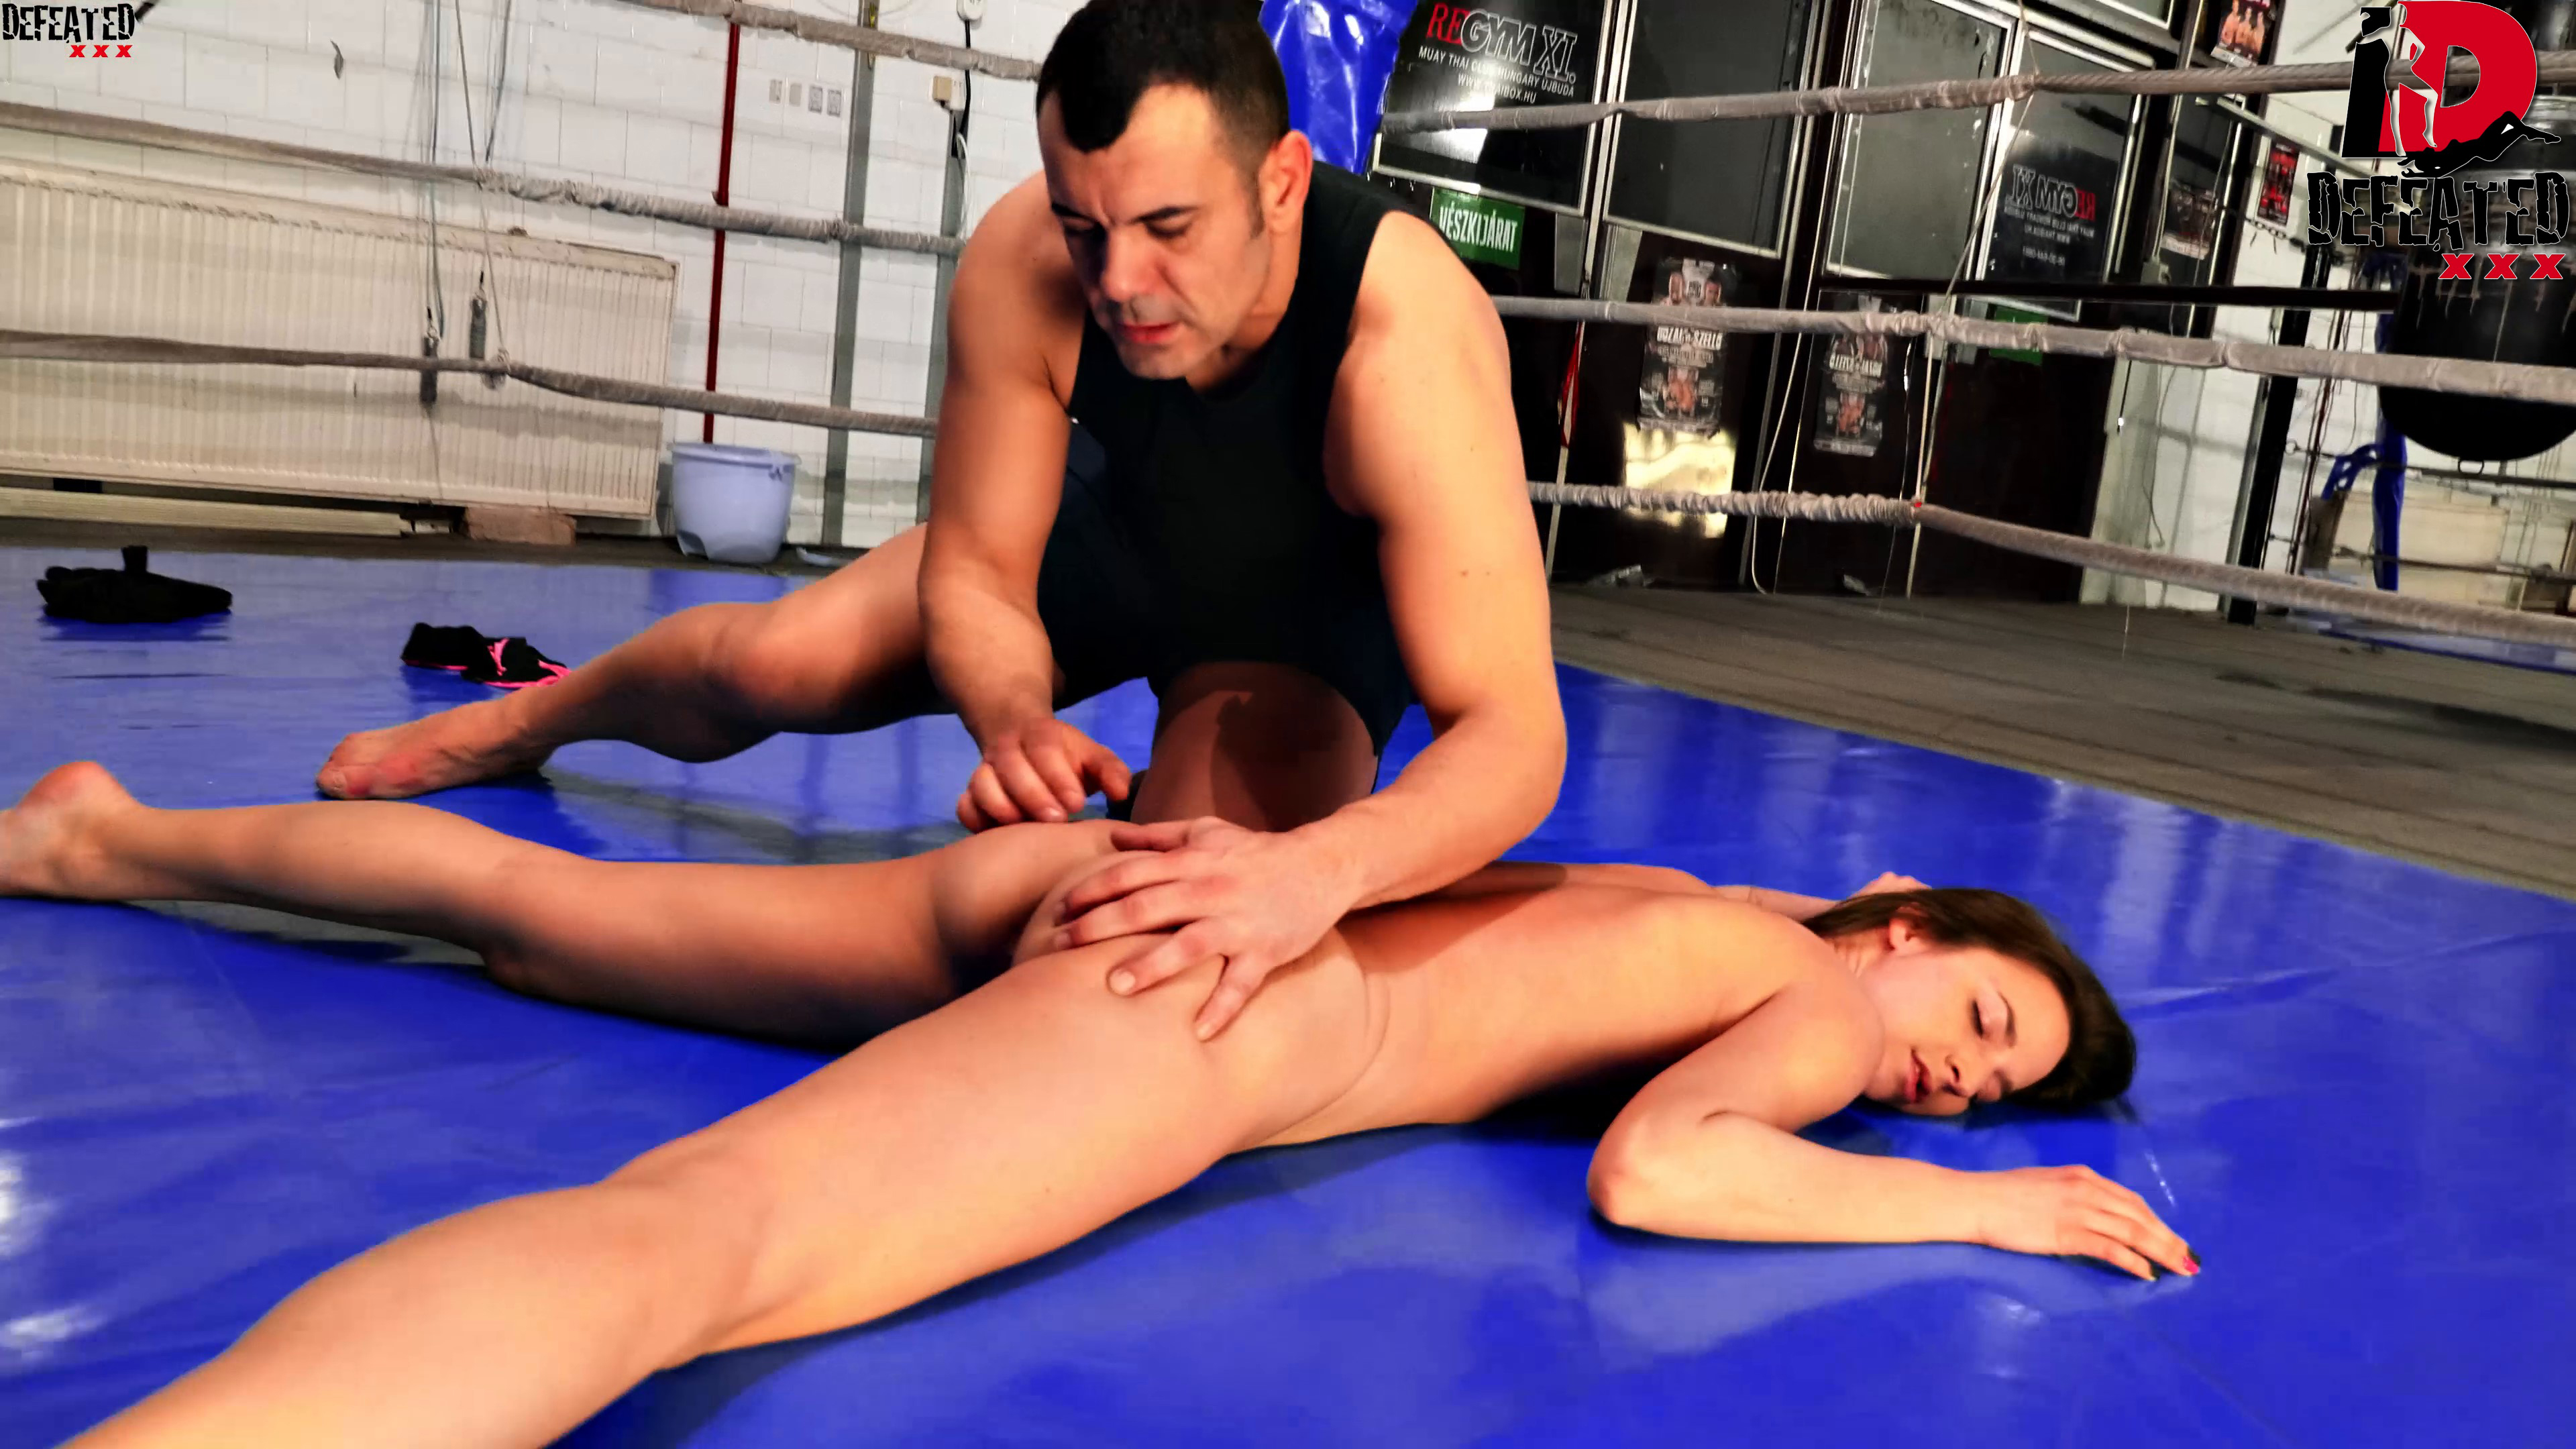 DEFEATED-MXD66---Amirah-Antonio-(87)